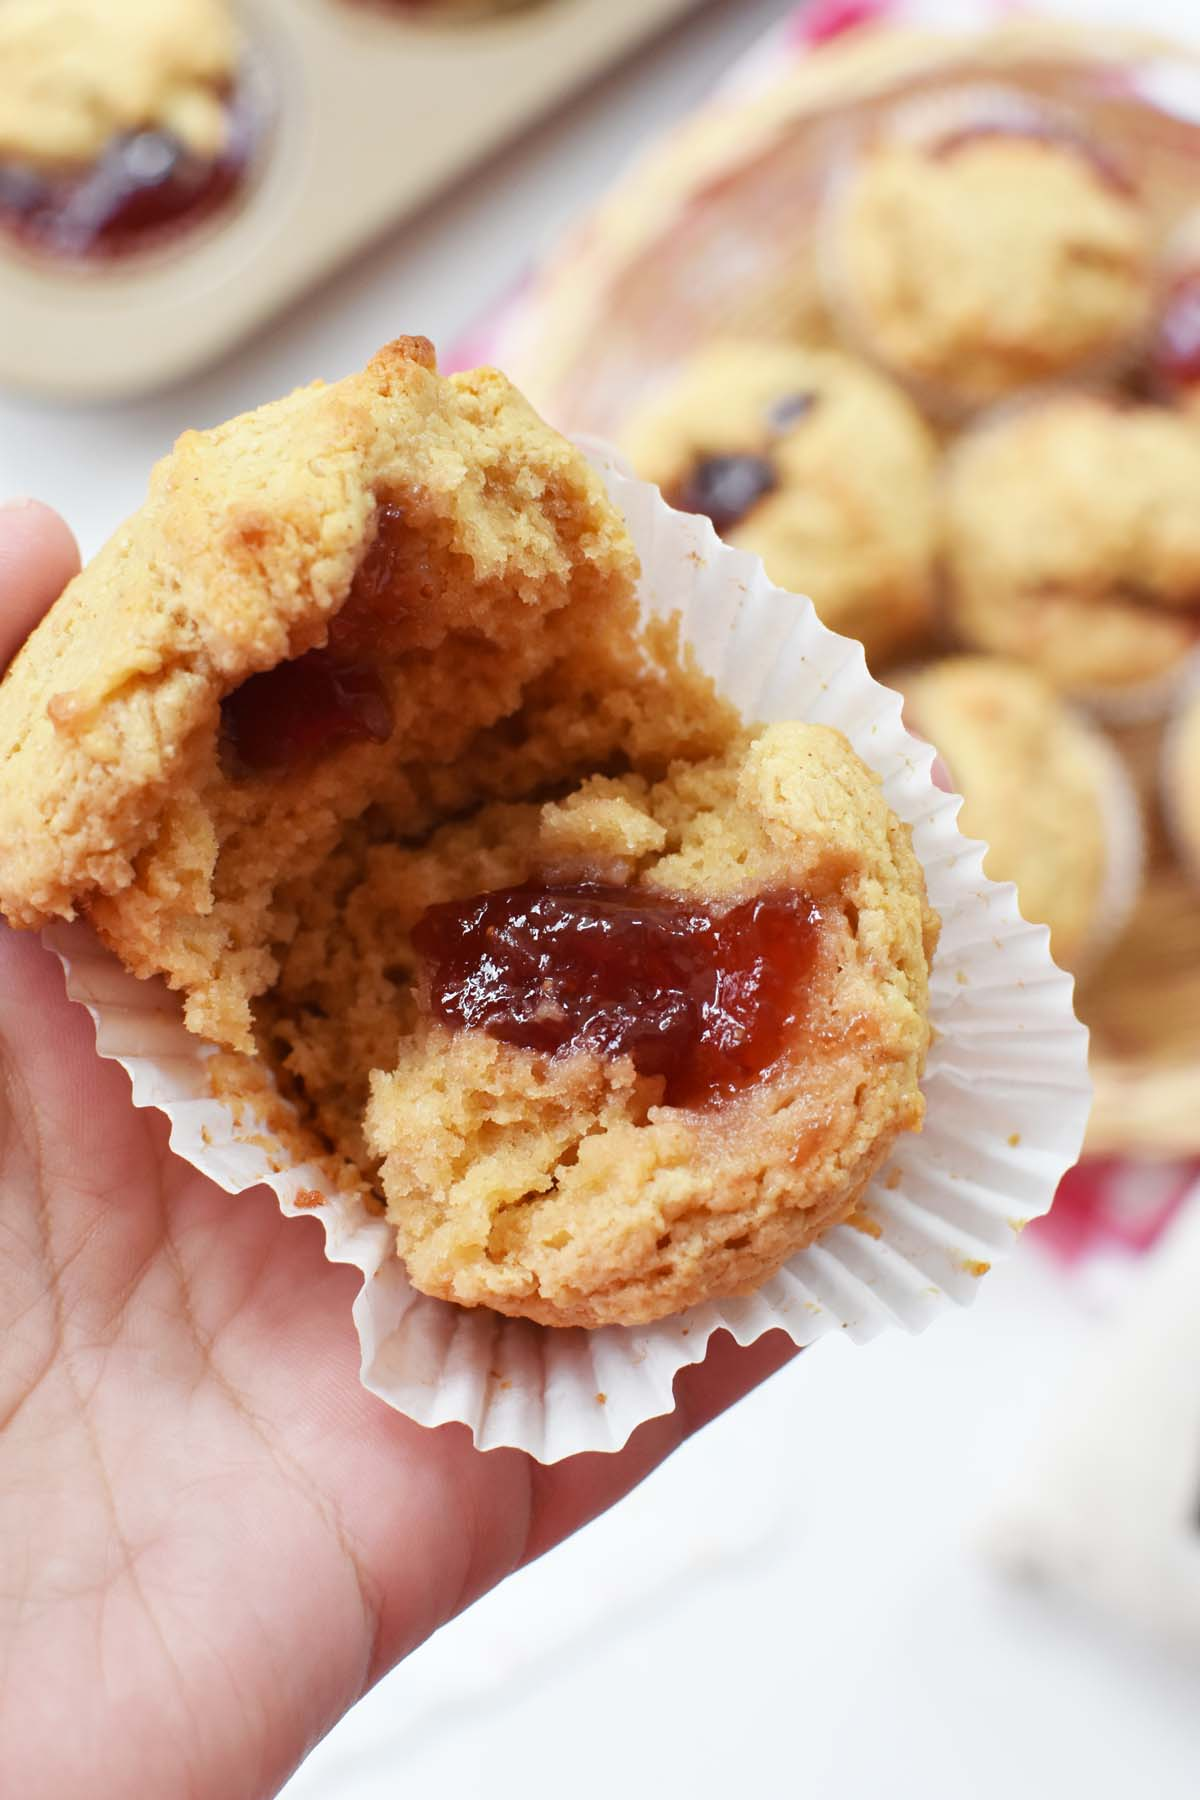 Inside a Peanut Butter and Jelly Muffin. A muffin is spread open to see the inside.